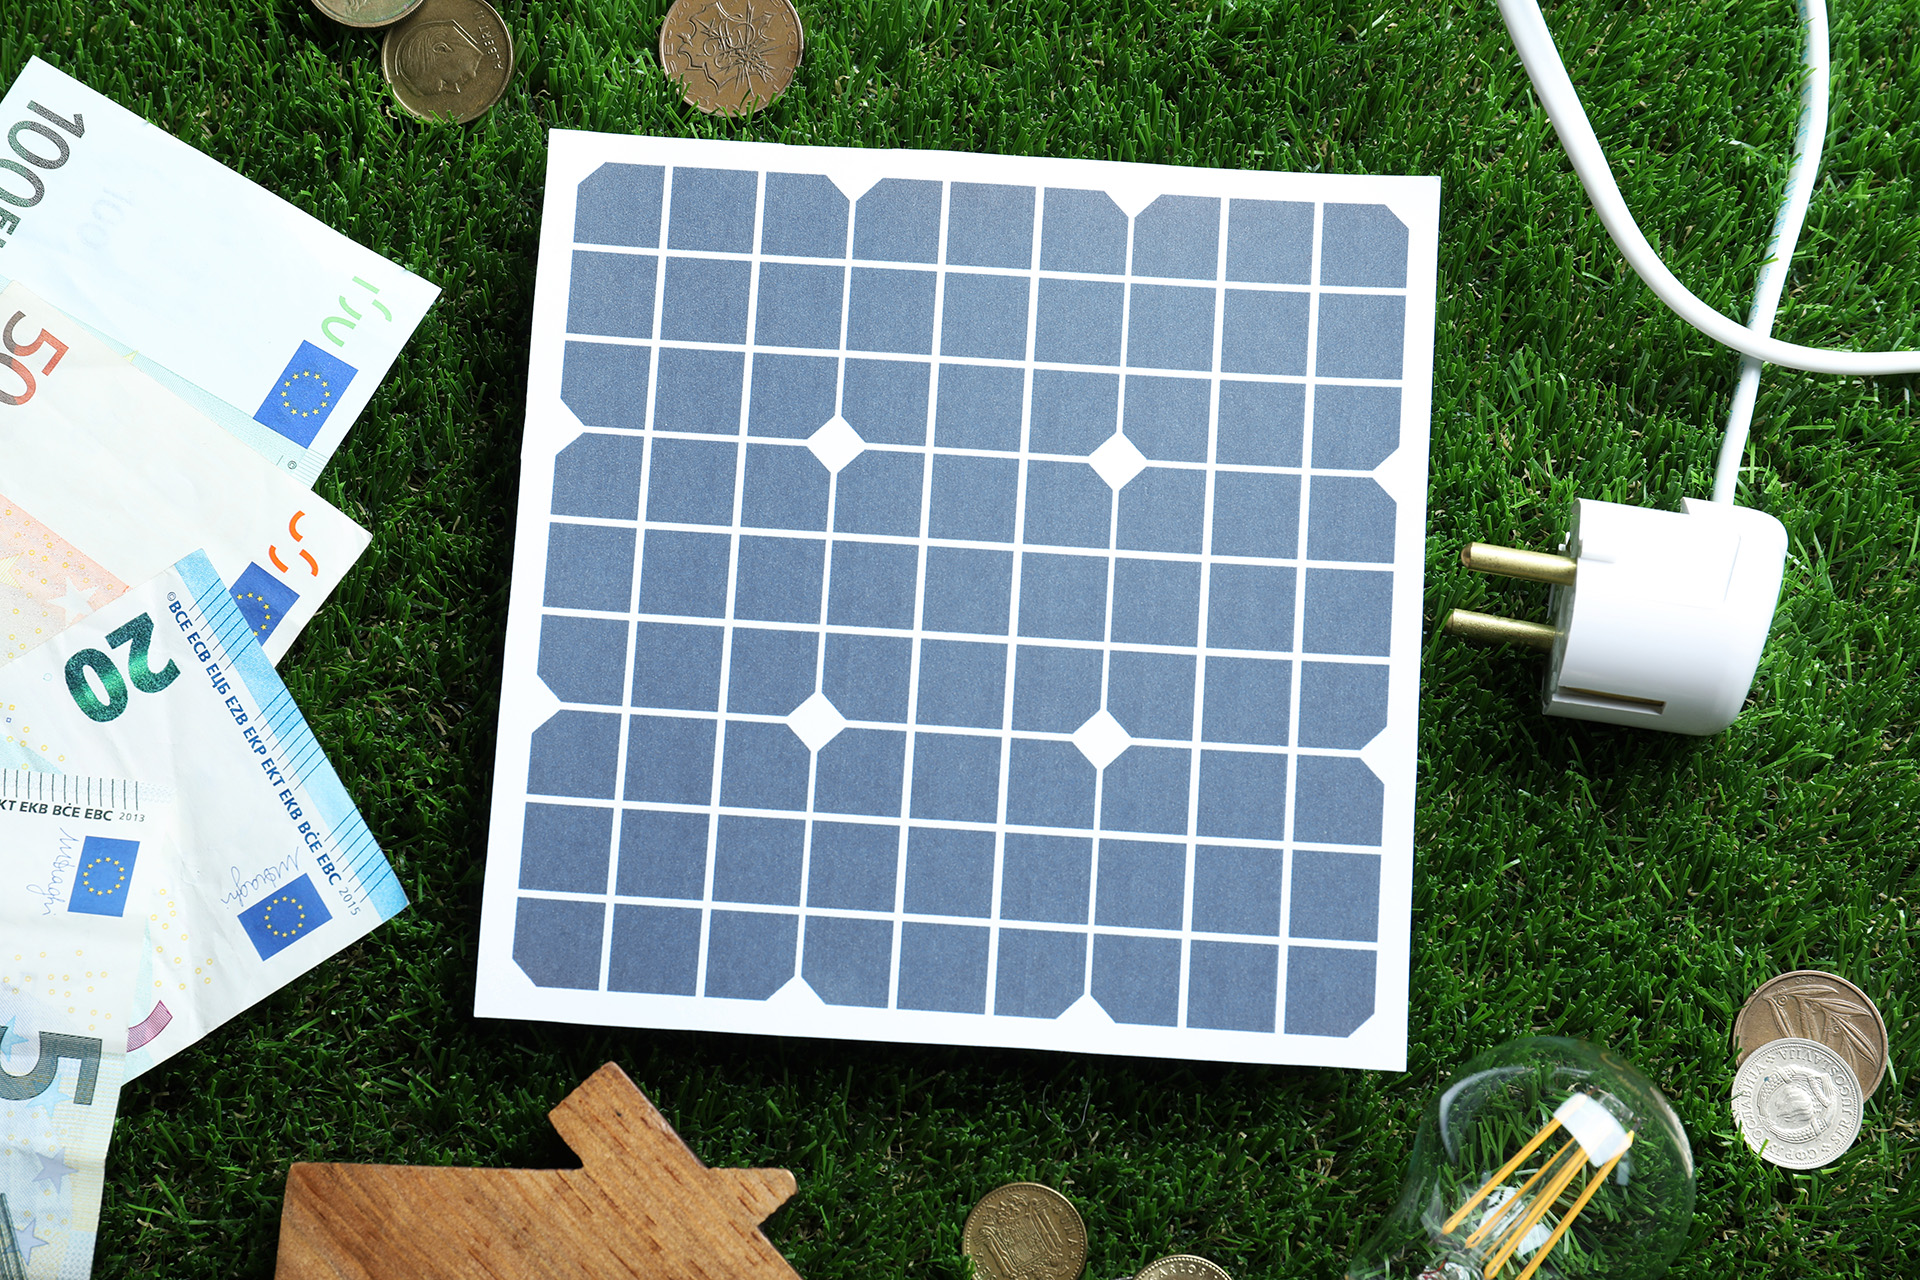 Flat lay composition with solar panel, house model and money on